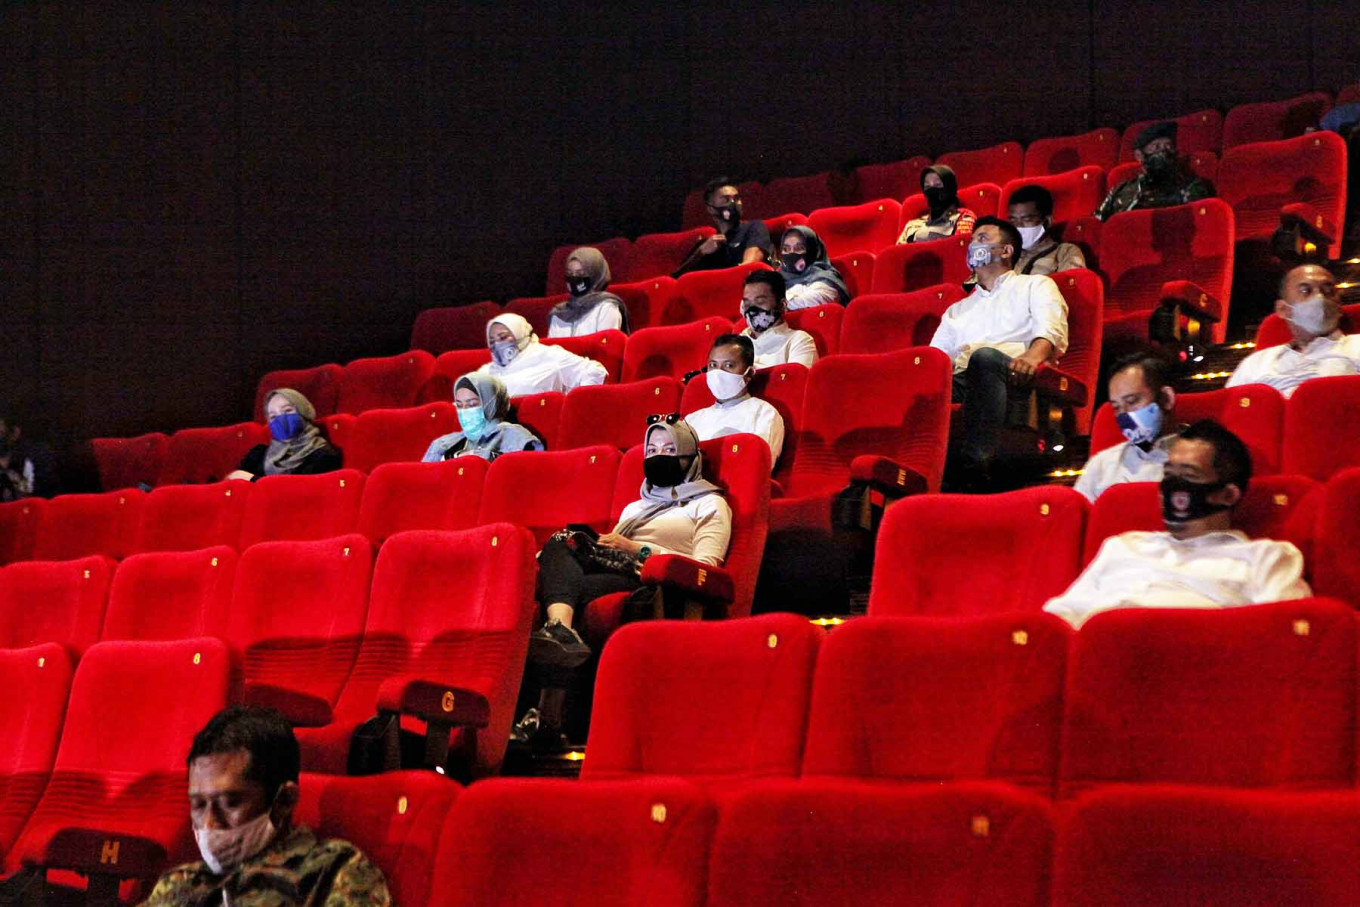 Bandung movie theaters resume operation